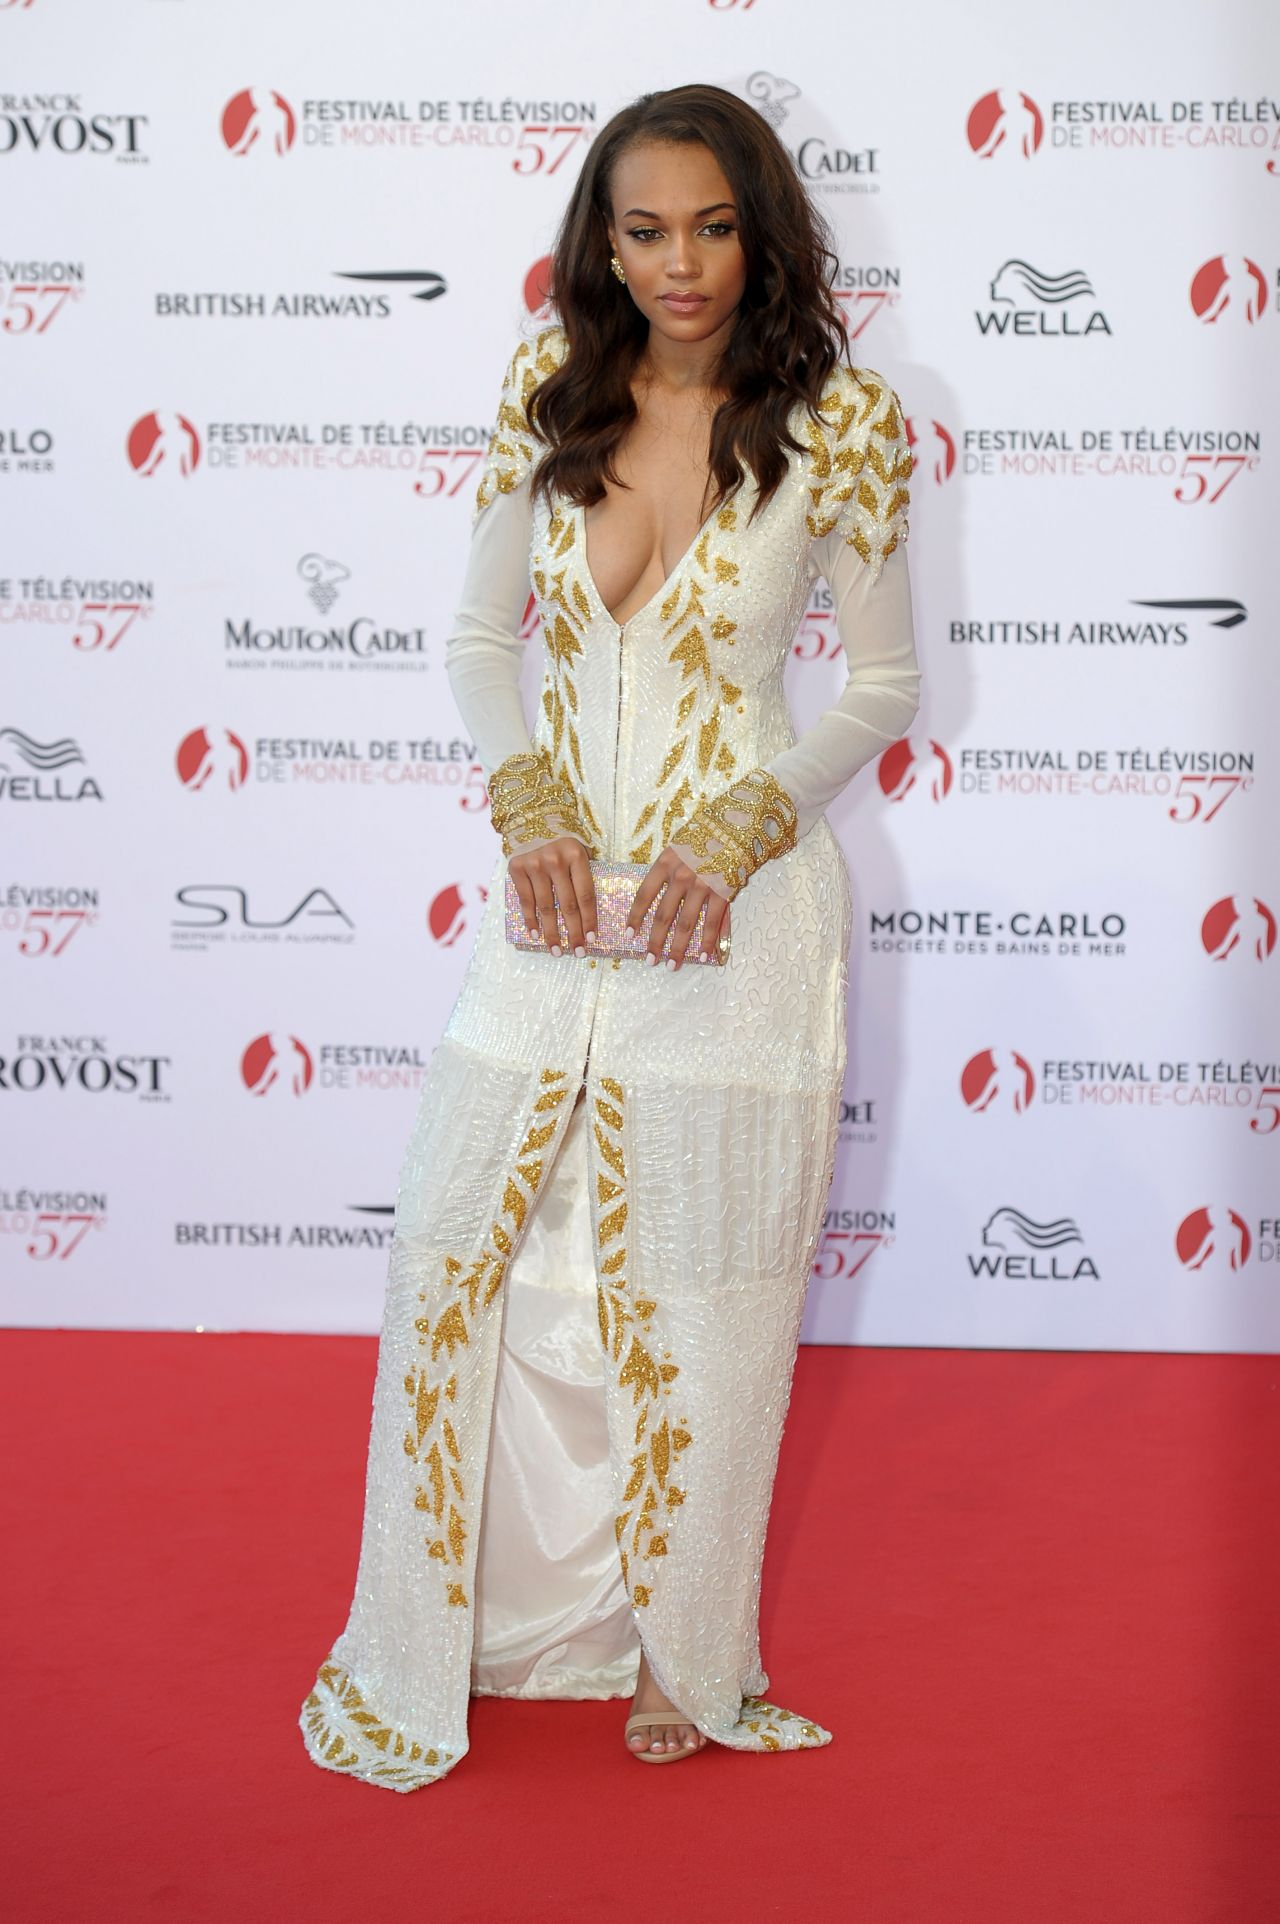 Reign Edwards attending the 57th Montecarlo Television Festival